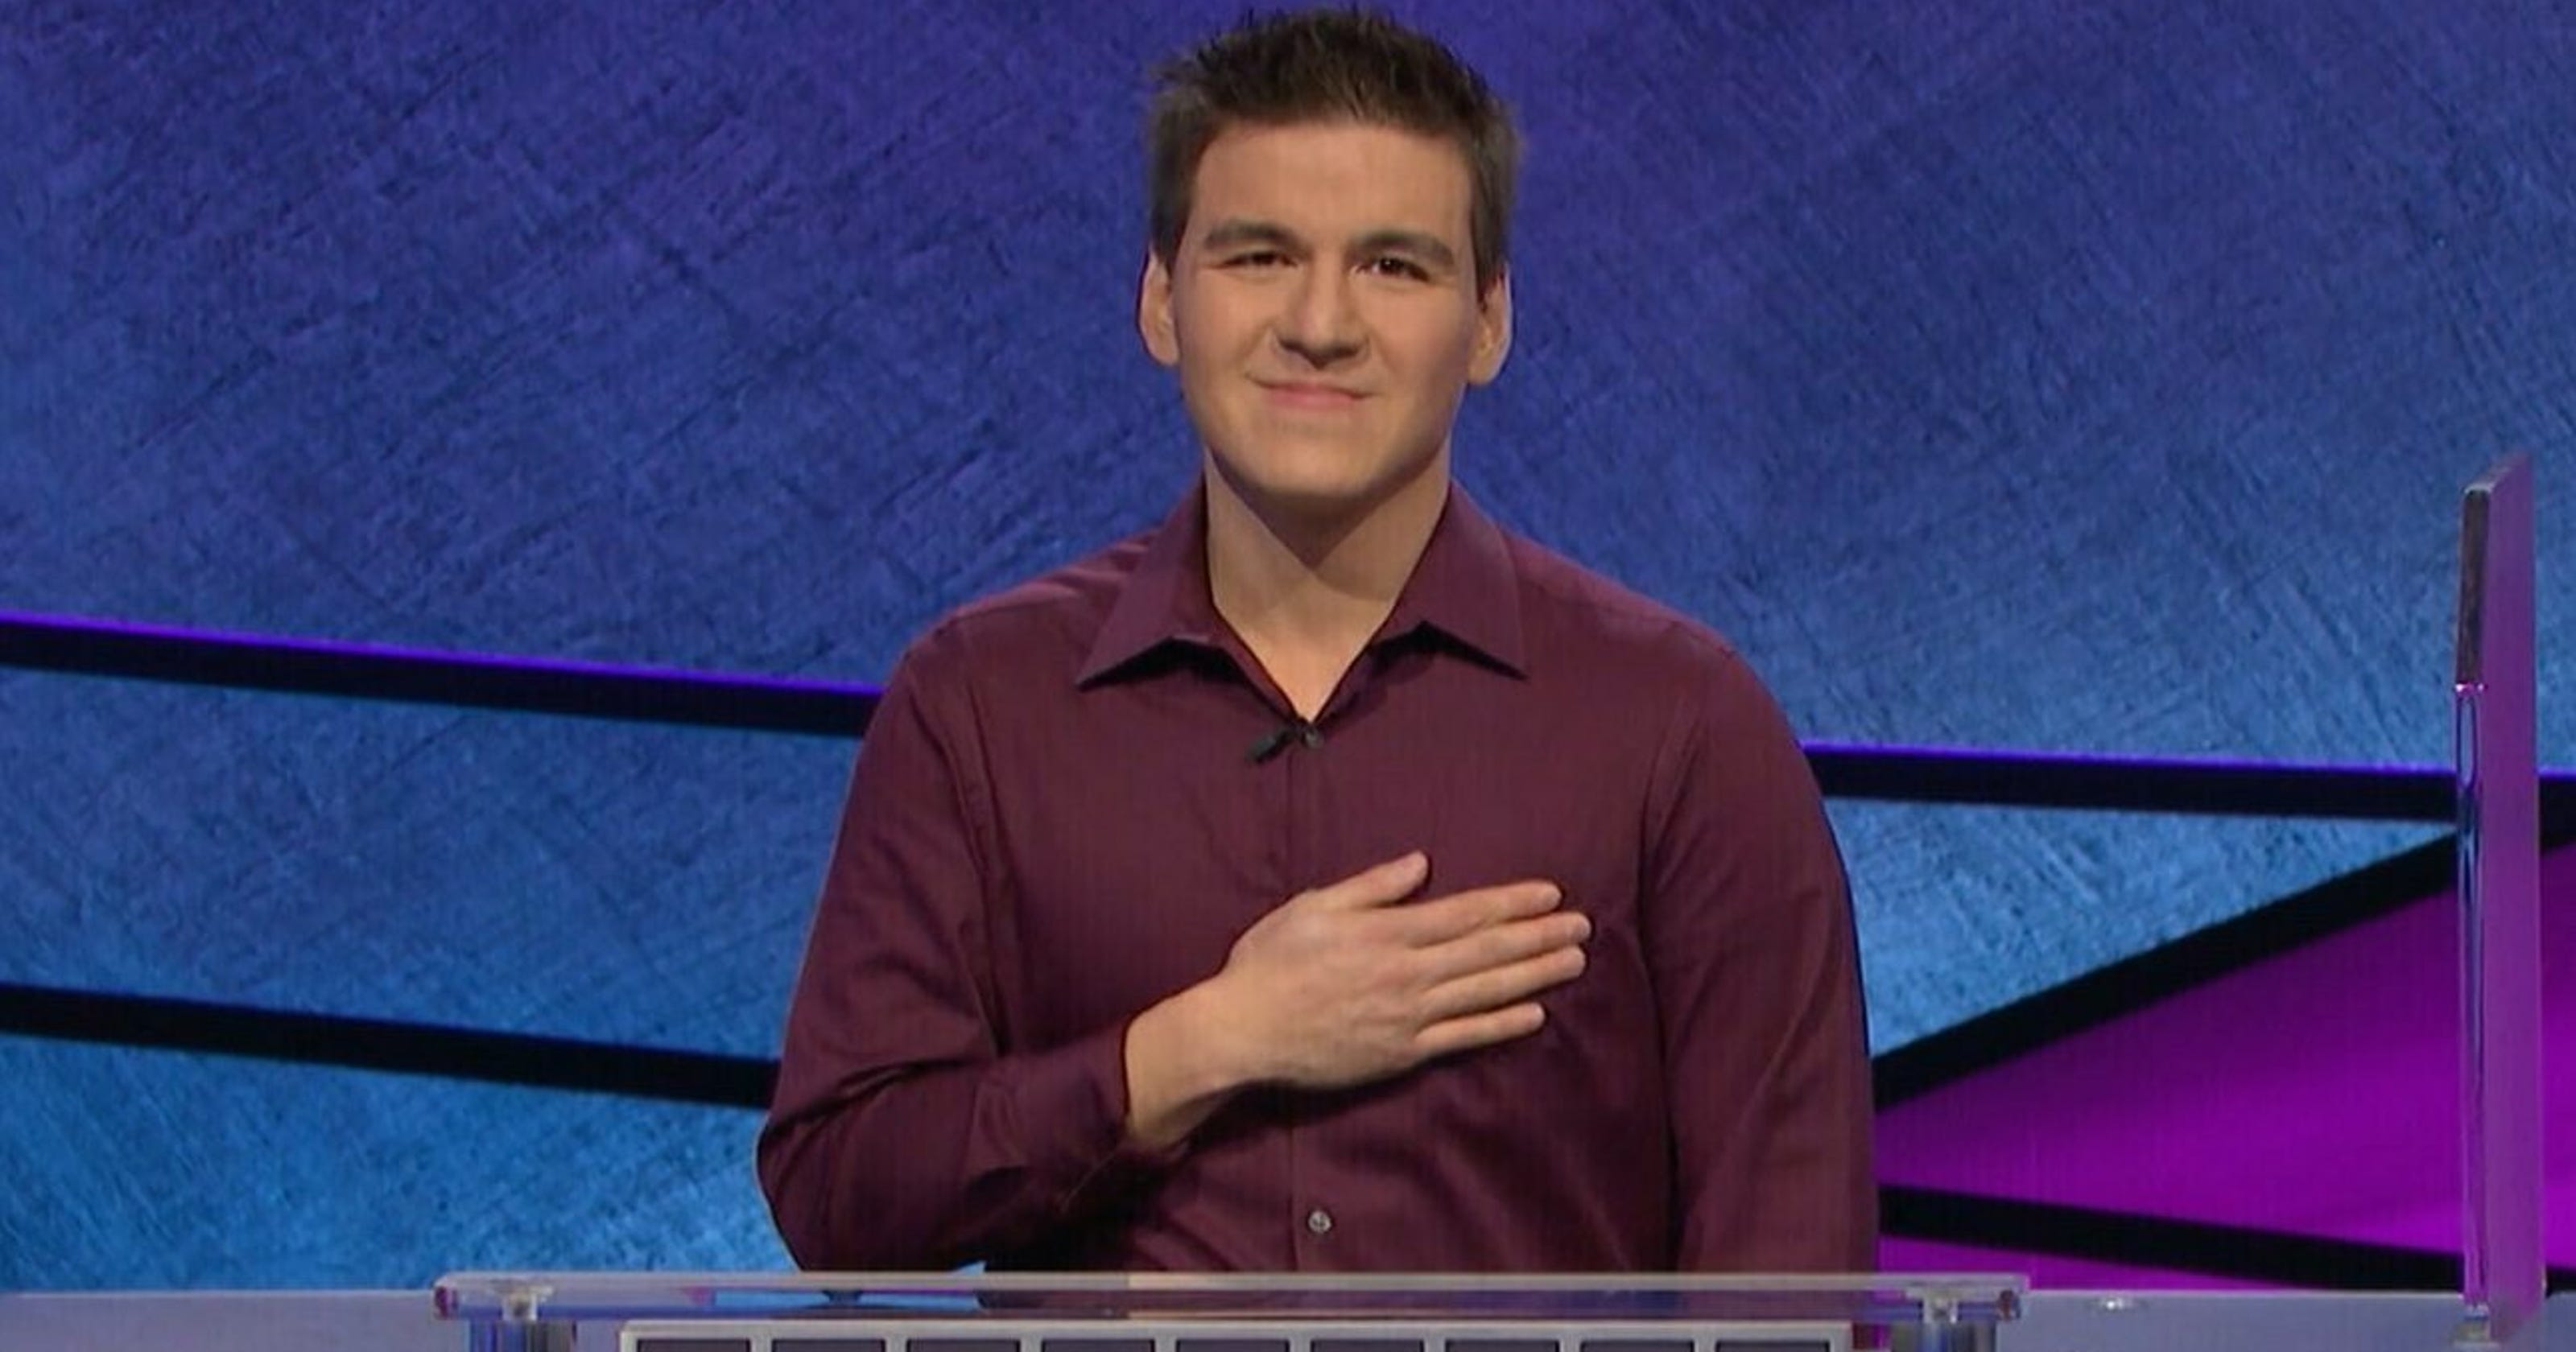 Jeopardy!': James Holzhauer once lost a boatload on a sports bet